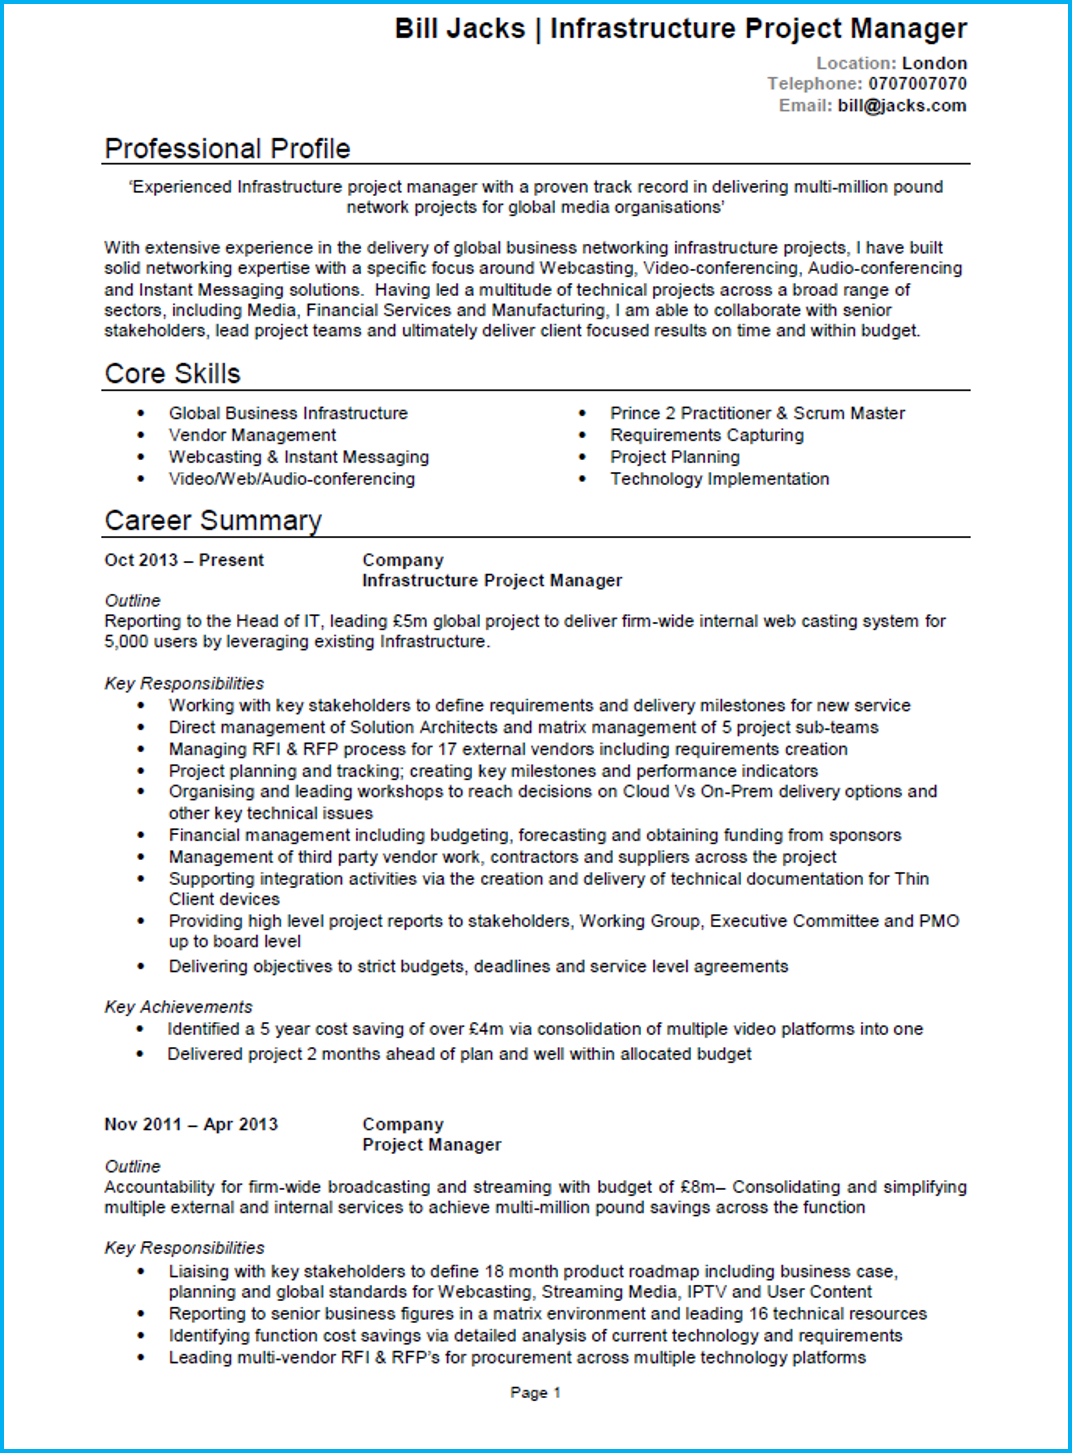 Basic CV template project manager page 1